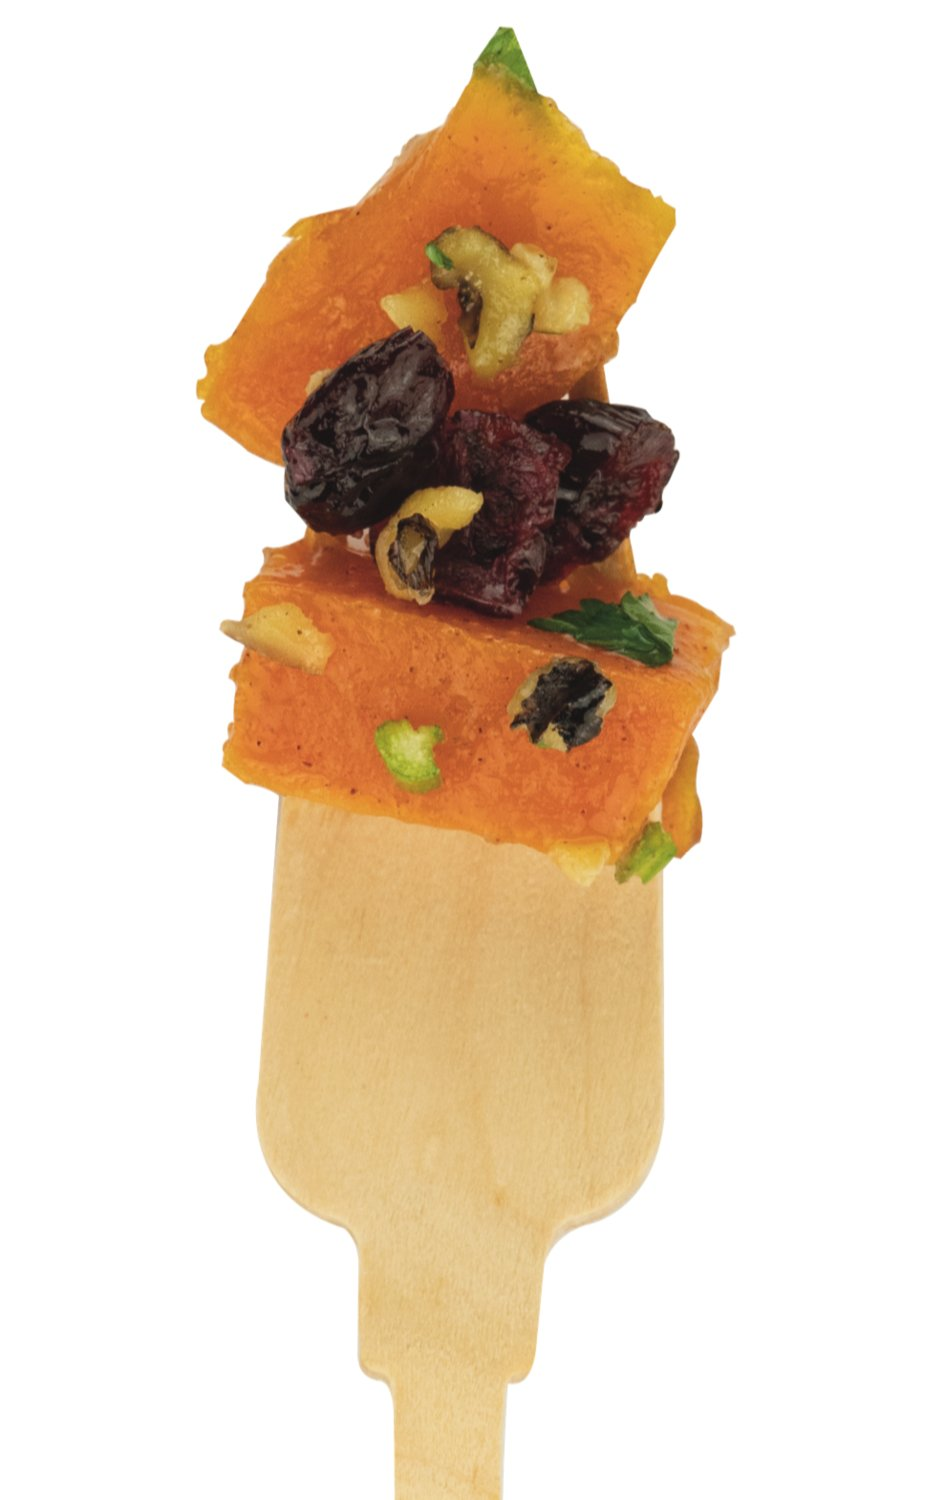 Butternut Squash with Craisins & Walnuts: mixed with craisins, walnuts, butter, and brown sugar.